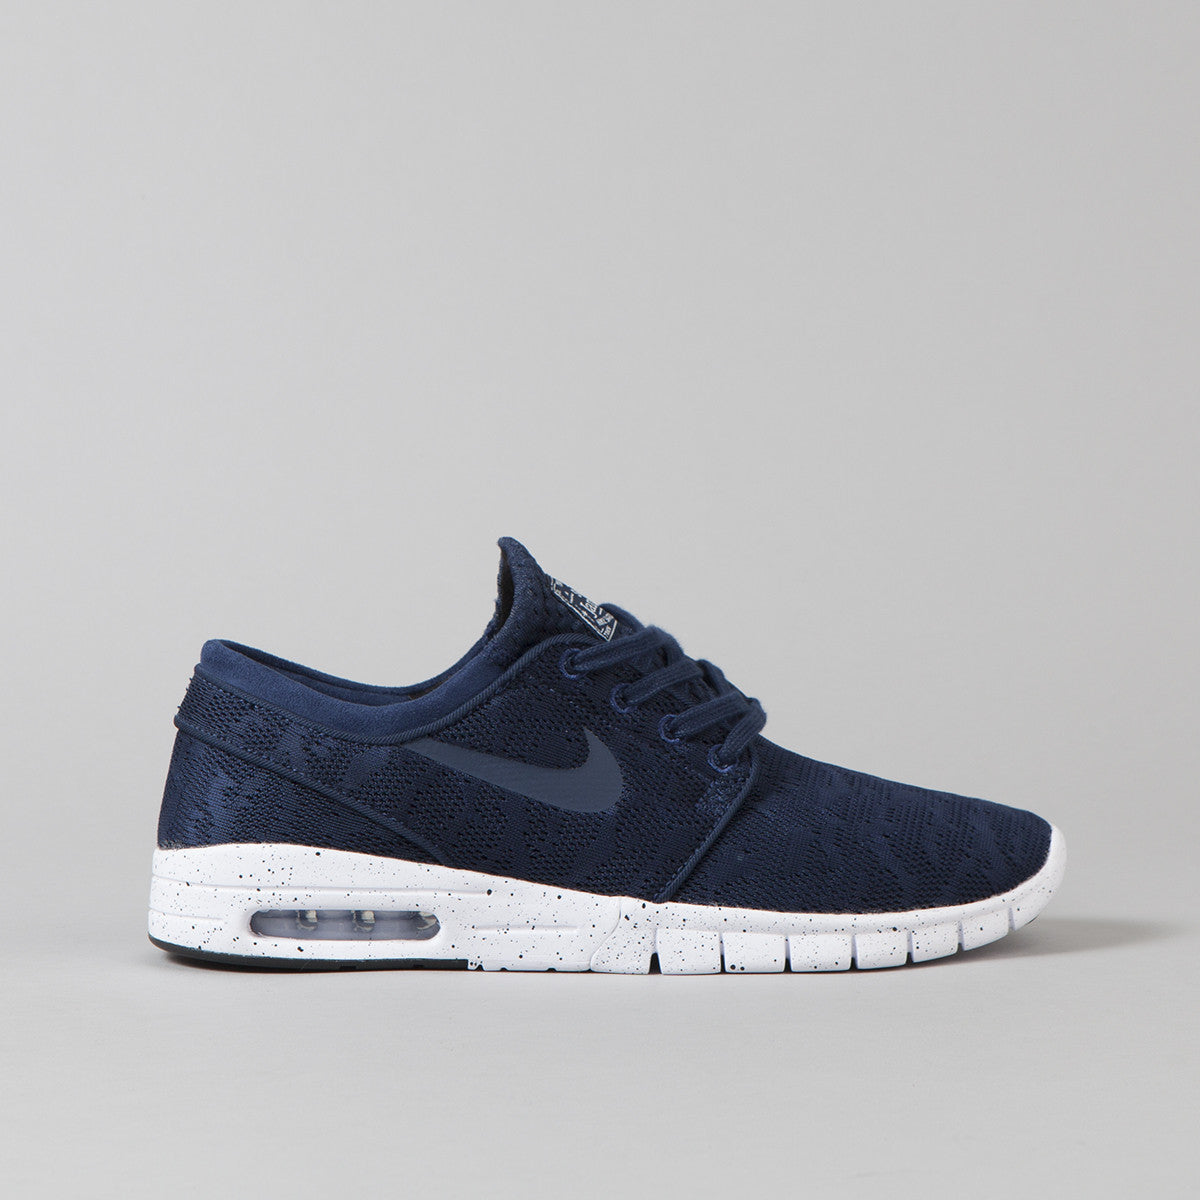 nike sb stefan janoski max shoes midnight navy mid navy. Black Bedroom Furniture Sets. Home Design Ideas